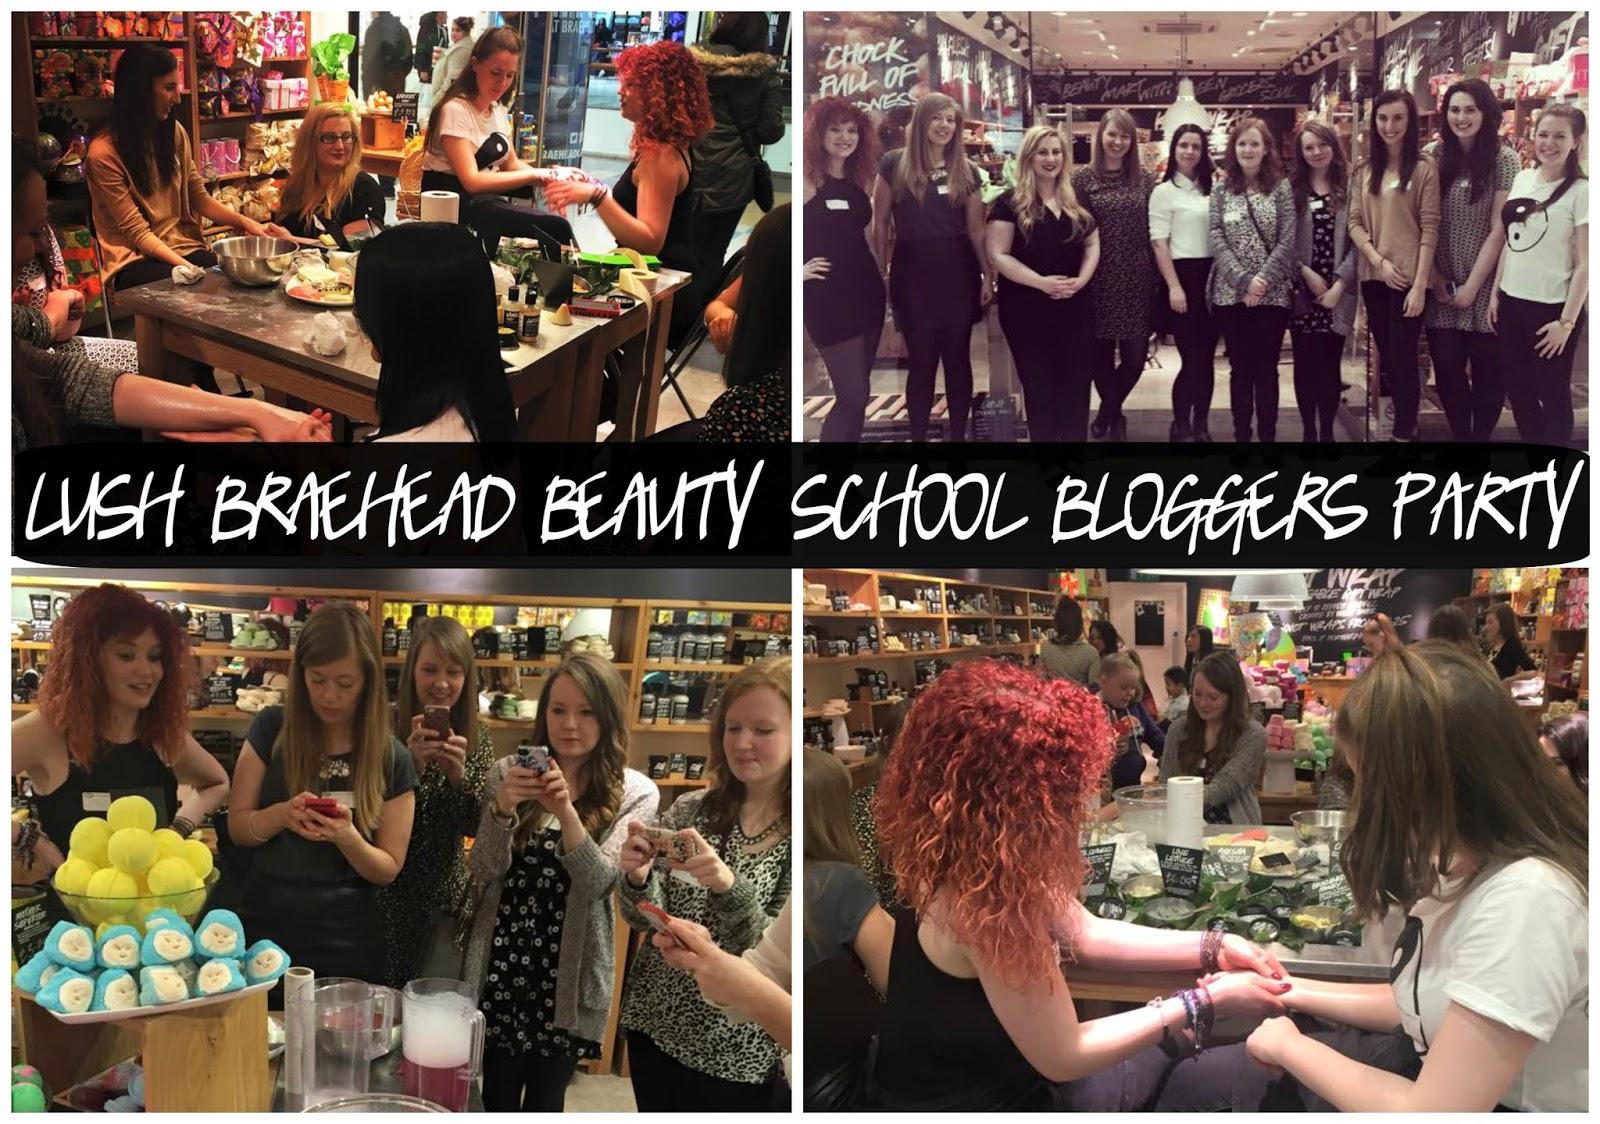 Lush Beauty School Bloggers Party